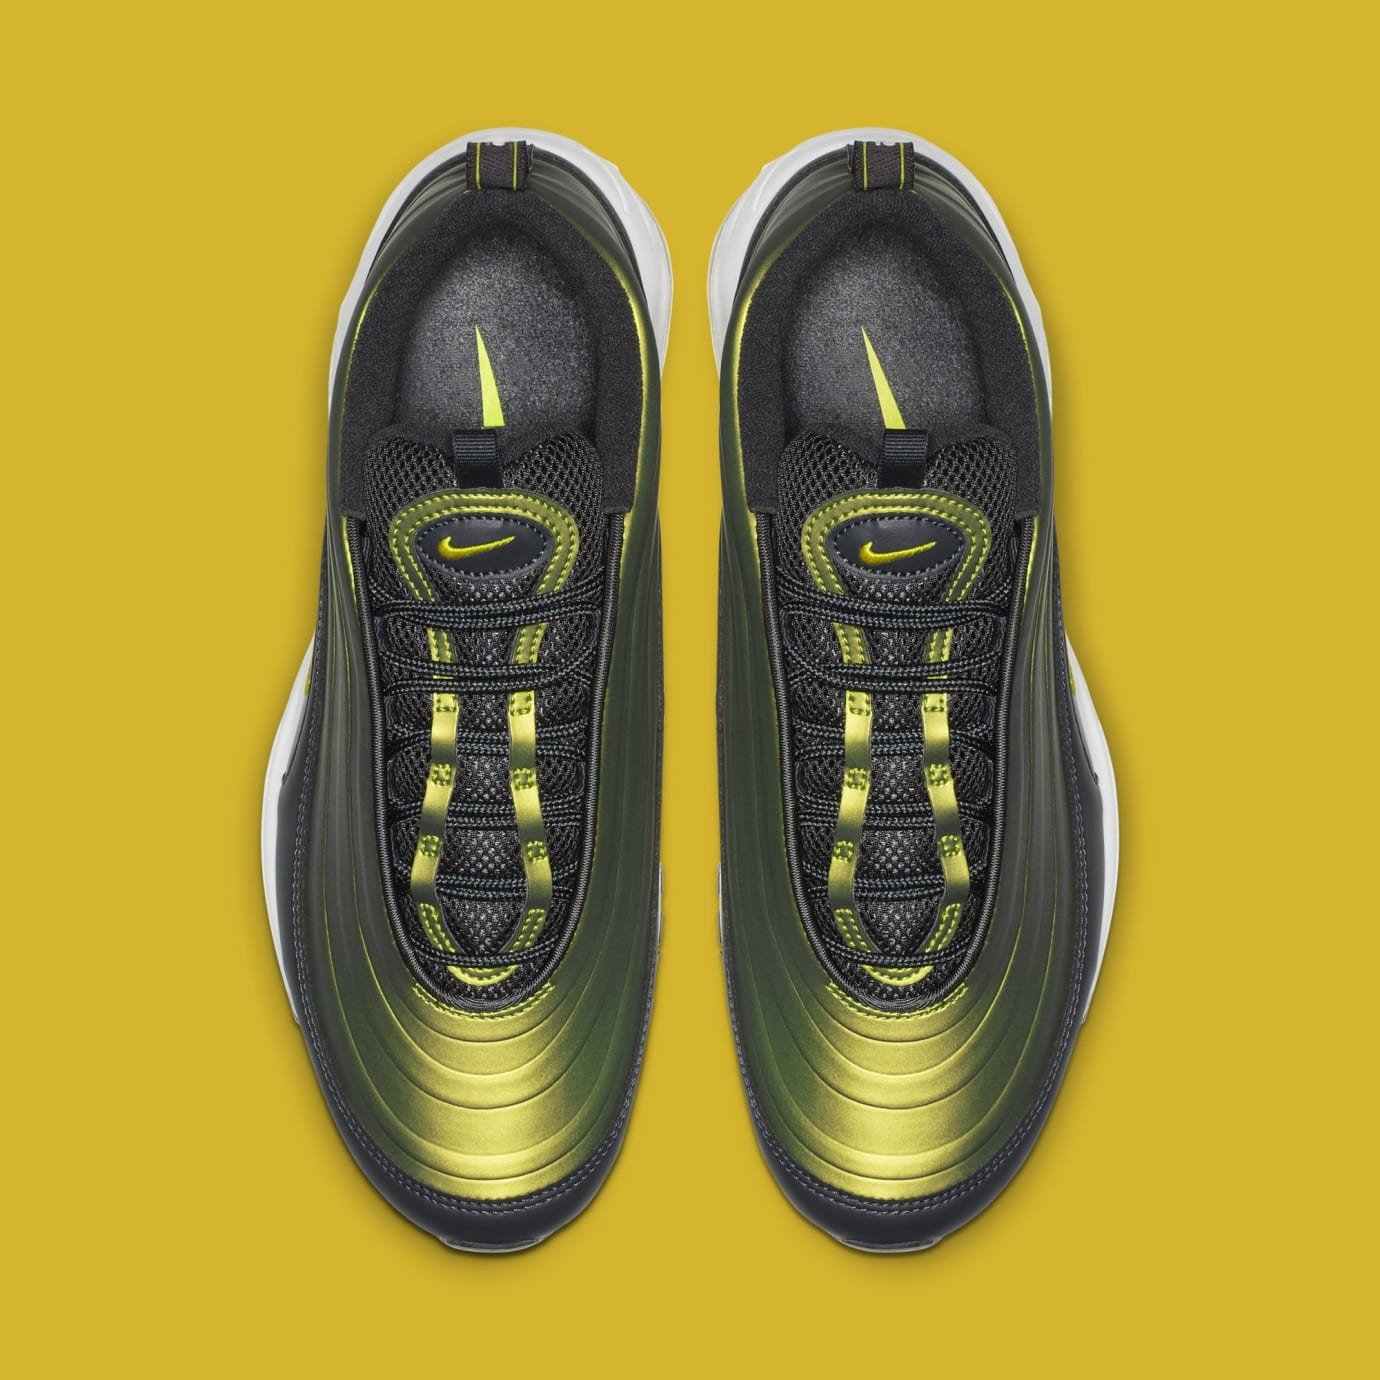 Nike Air Max 97 'Anthracite/Amarillo-Summit White' AV1165-002 (Top)